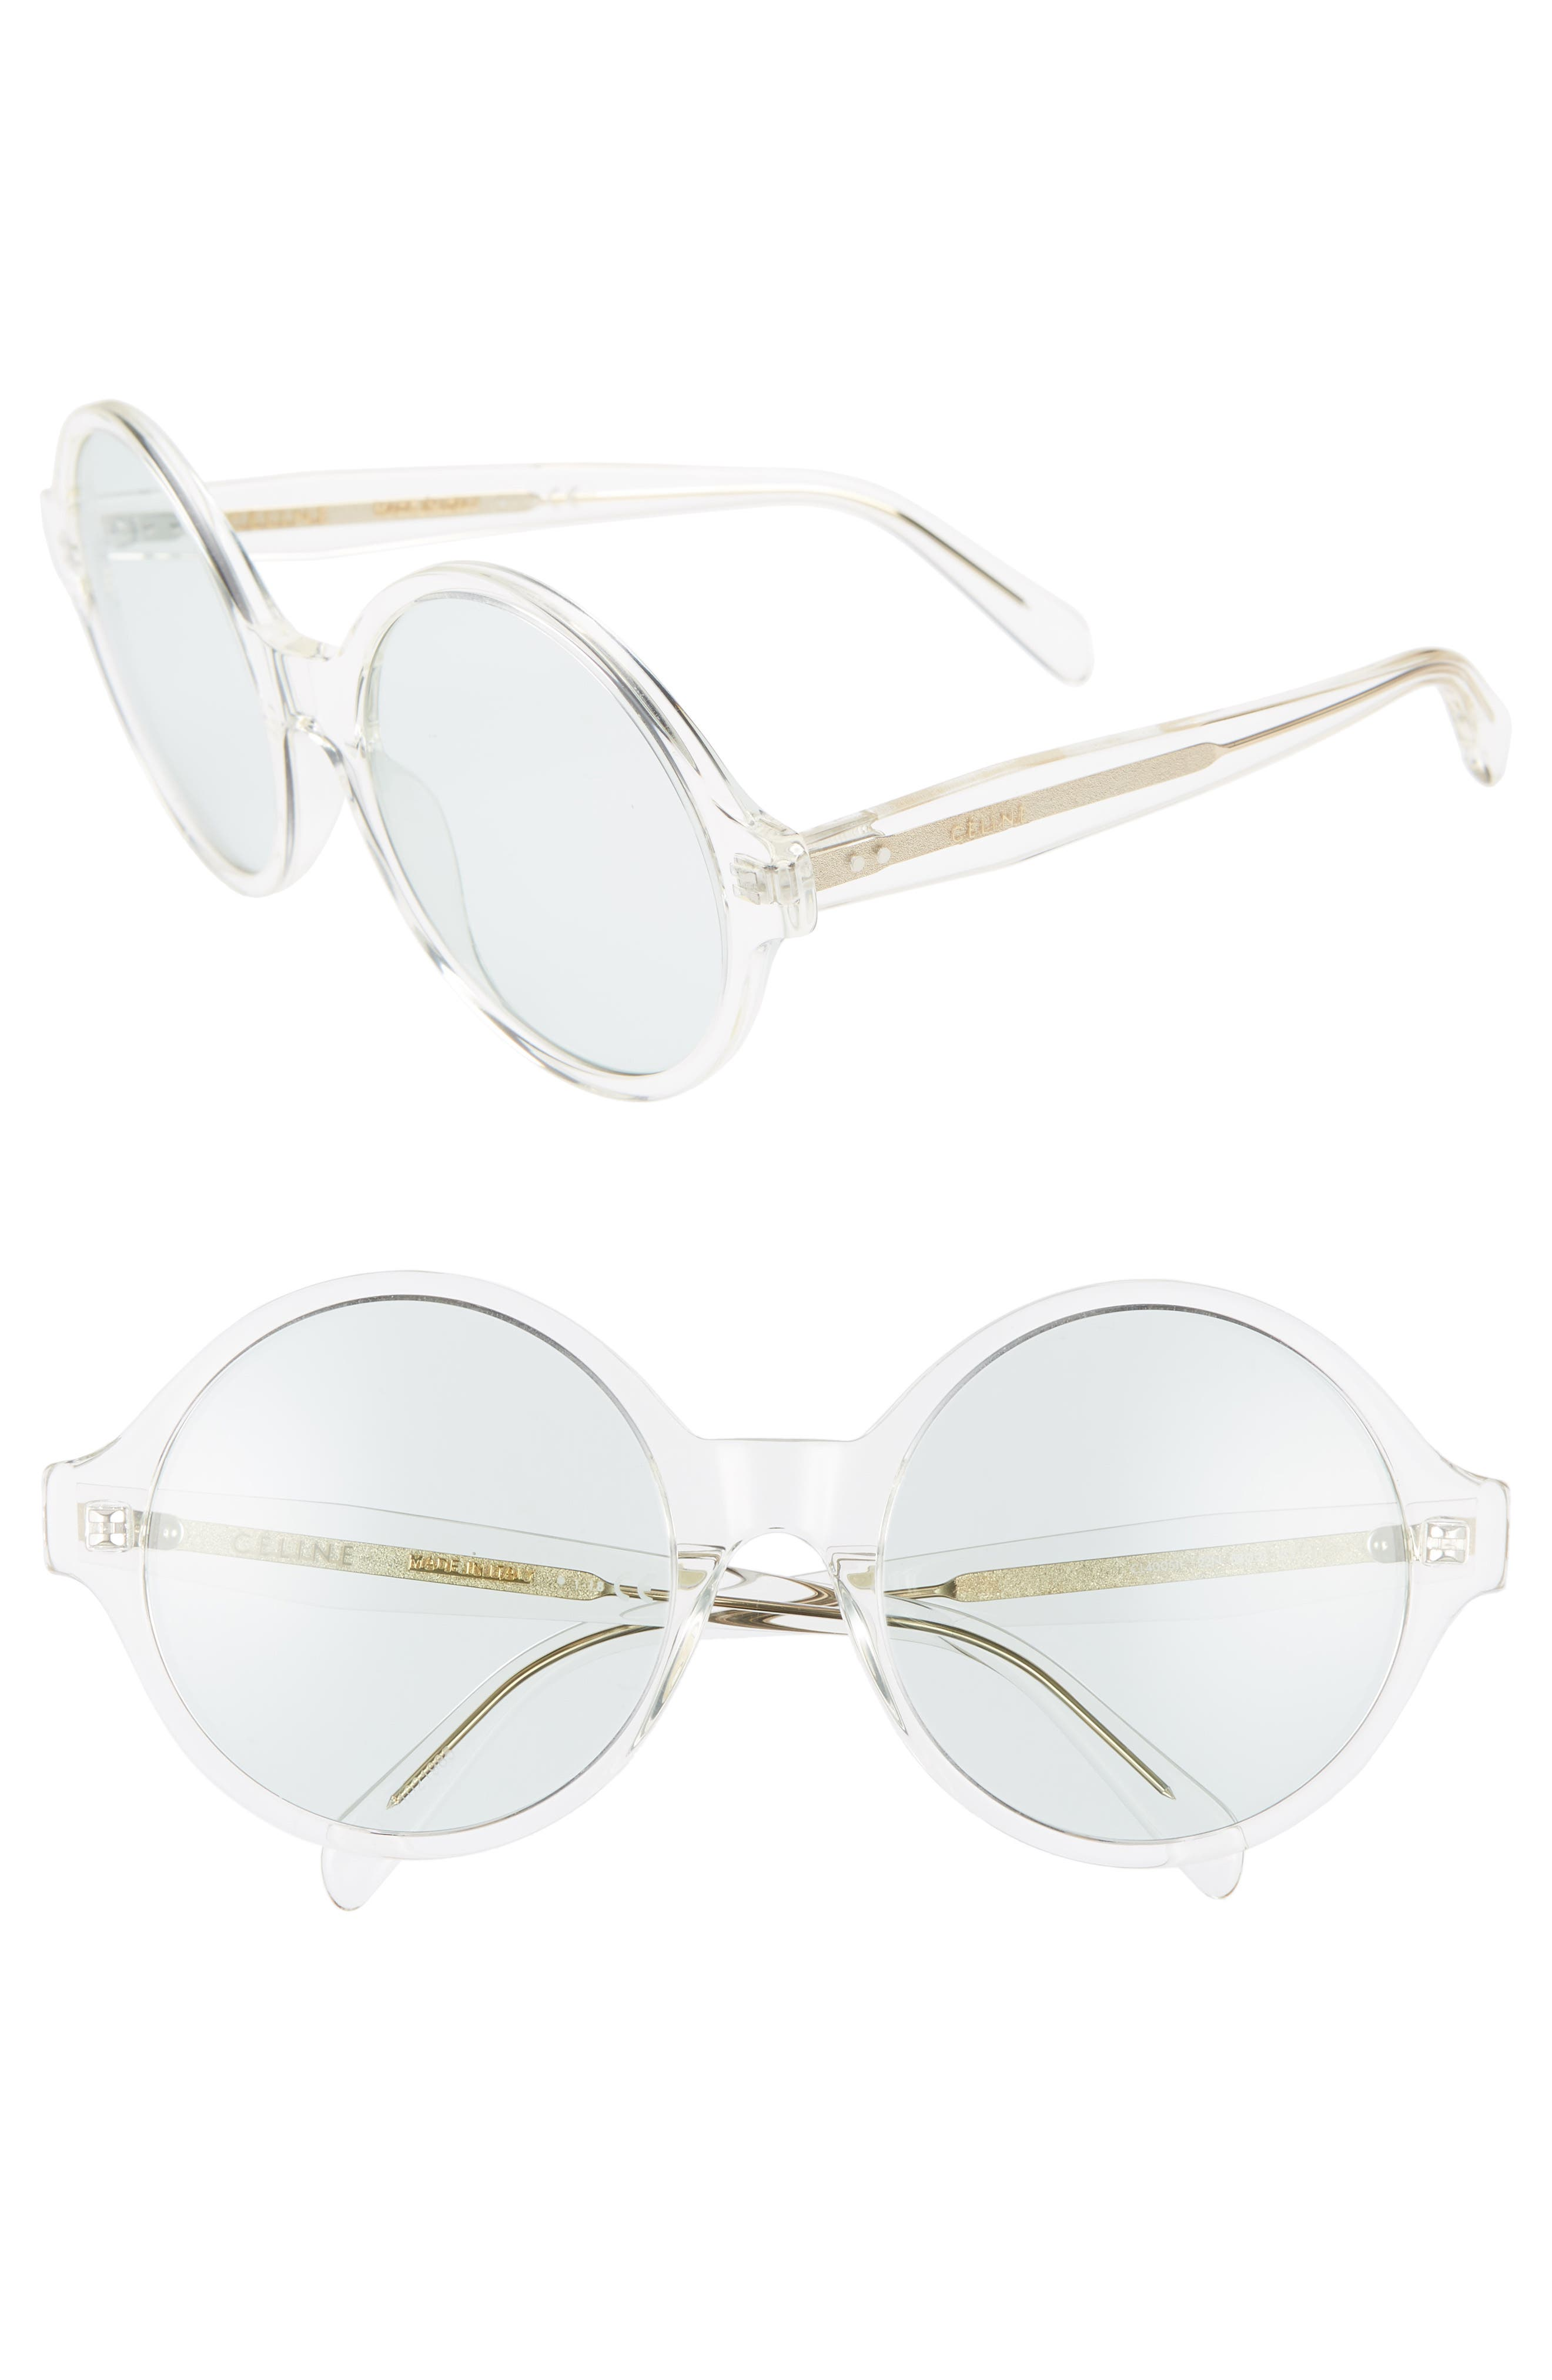 Celine 5m Round Sunglasses - Transparent Yellow/ Lt Green